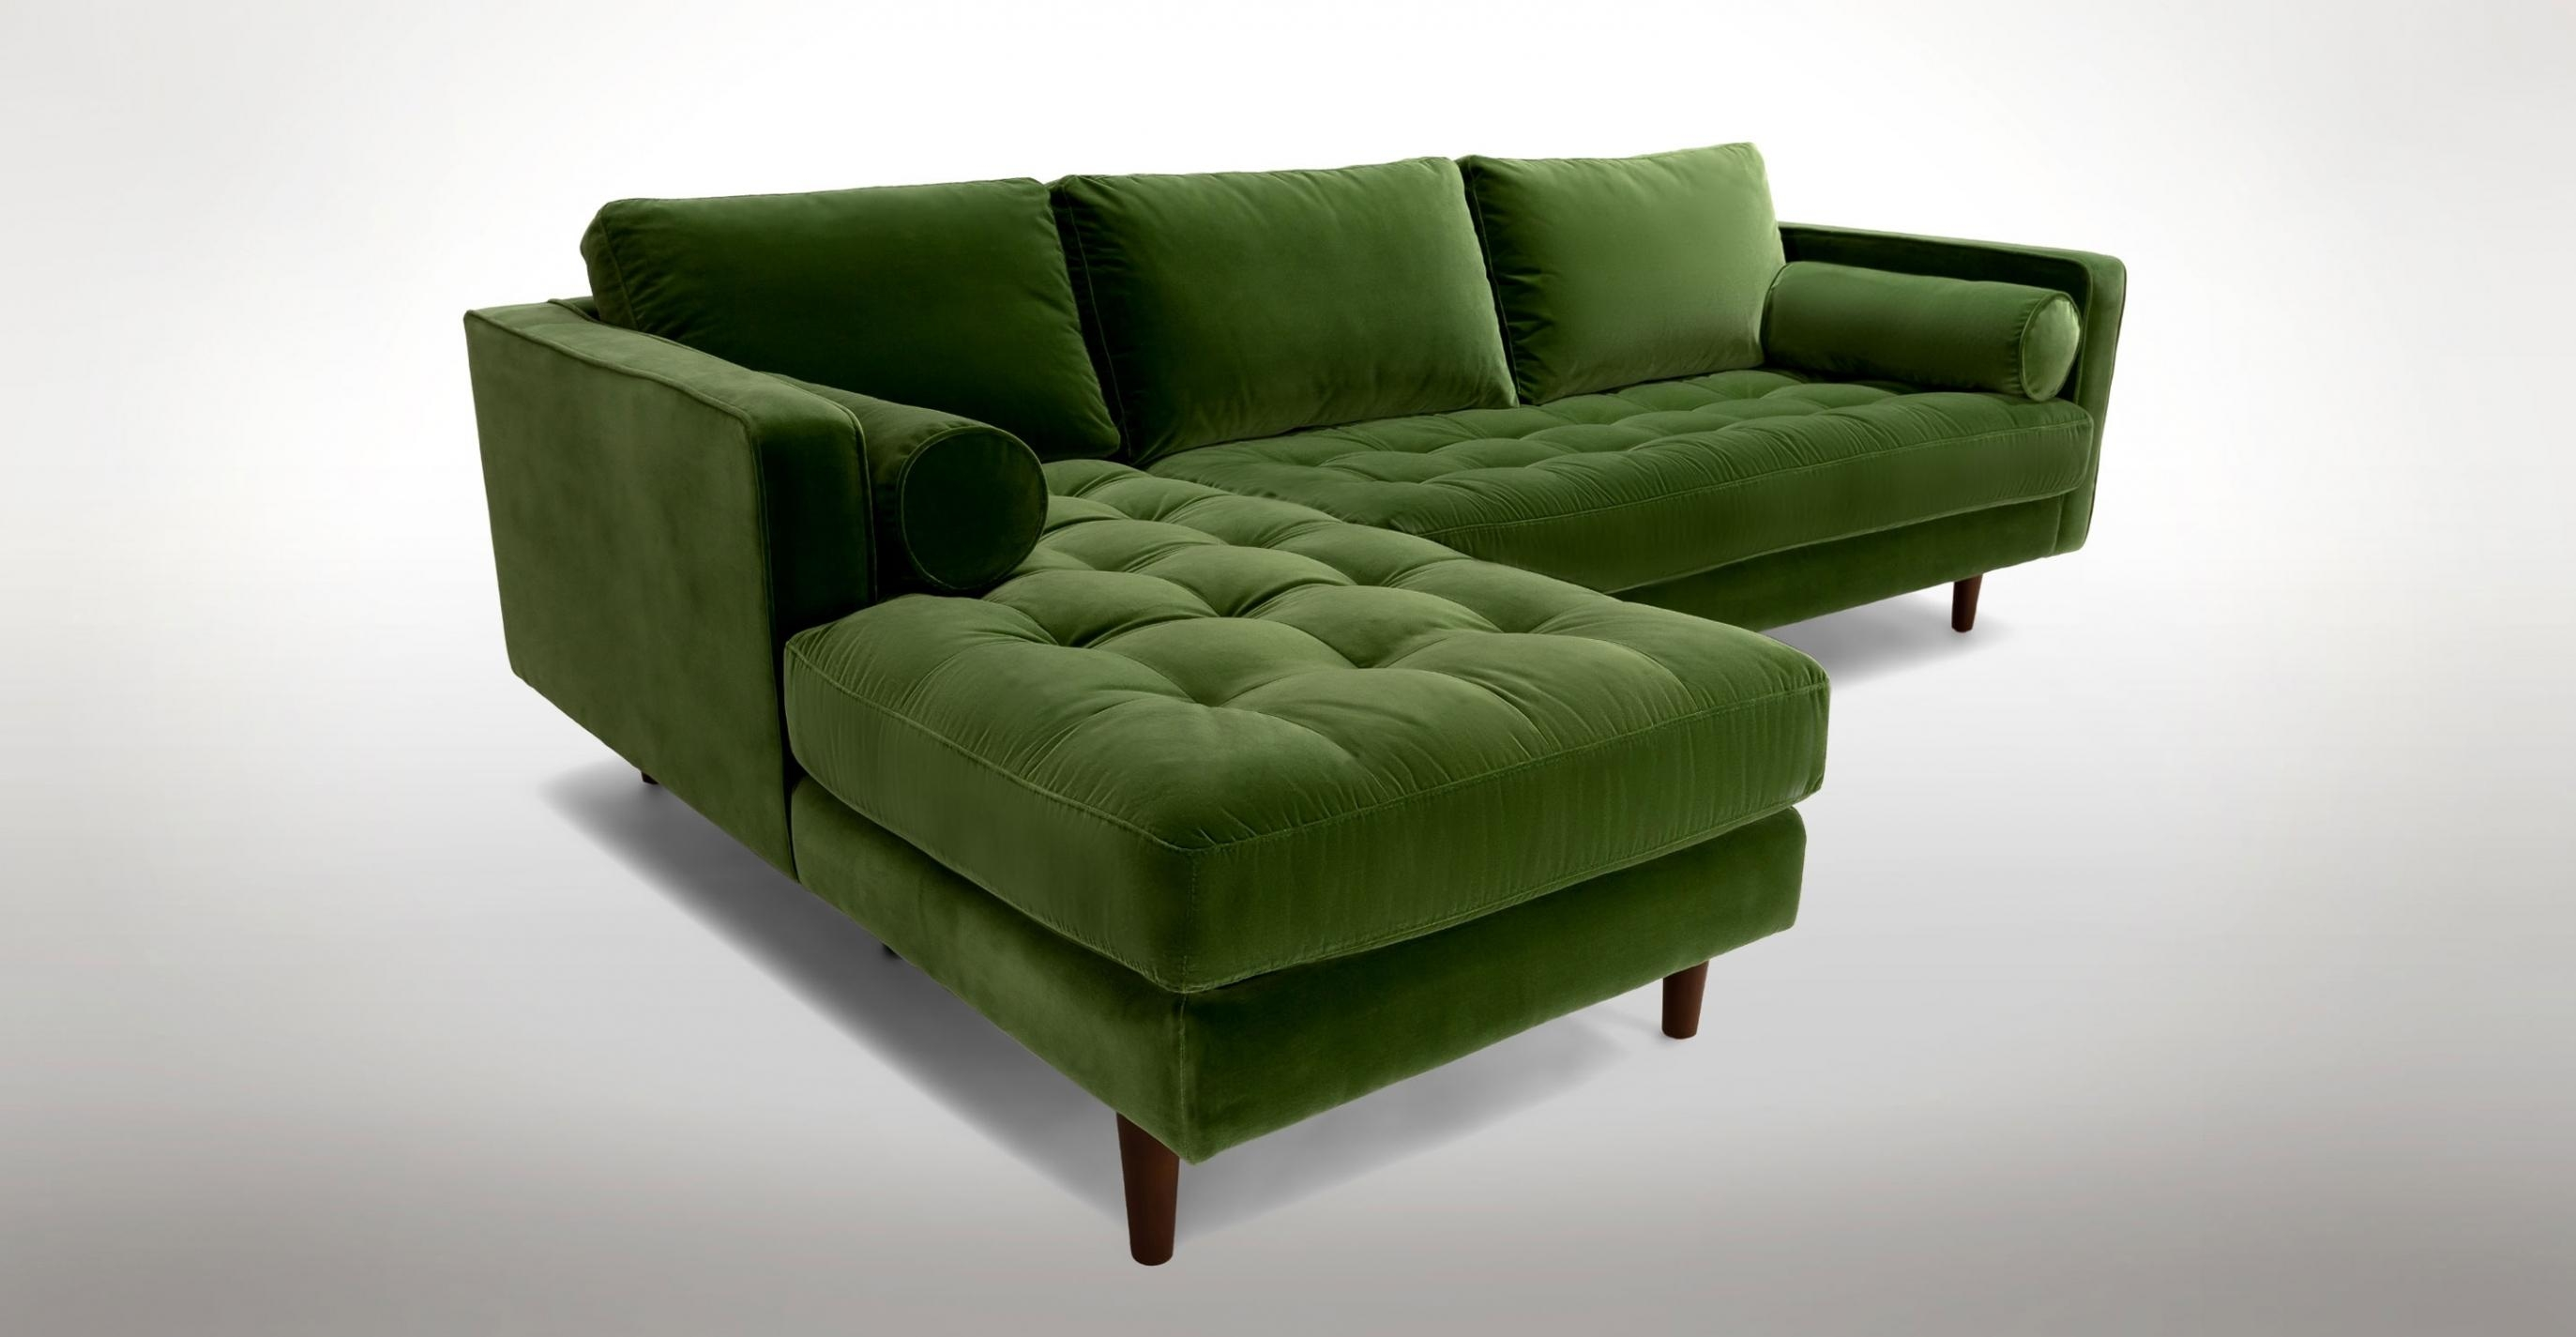 Likable Olive Green Fabric Sectional Sofa With Chaise And With Throughout Green Sectional Sofa With Chaise (View 8 of 15)